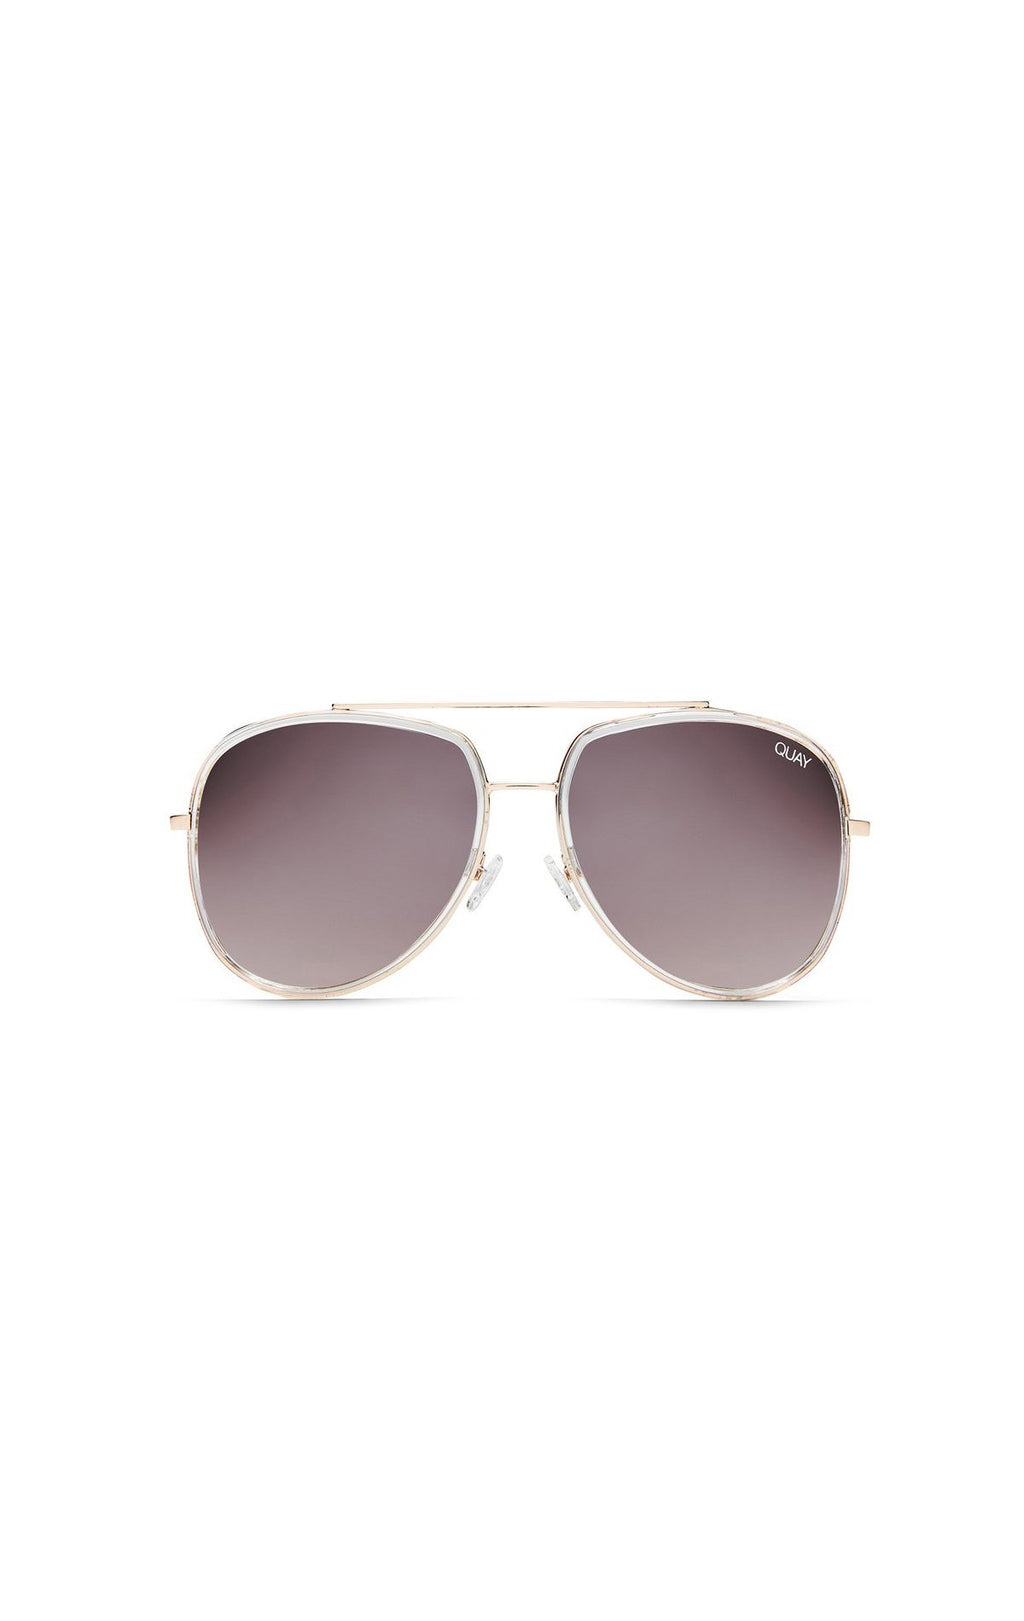 QUAY NEEDING FAME OVERSIZED AVIATOR SUNGLASSES FRONT